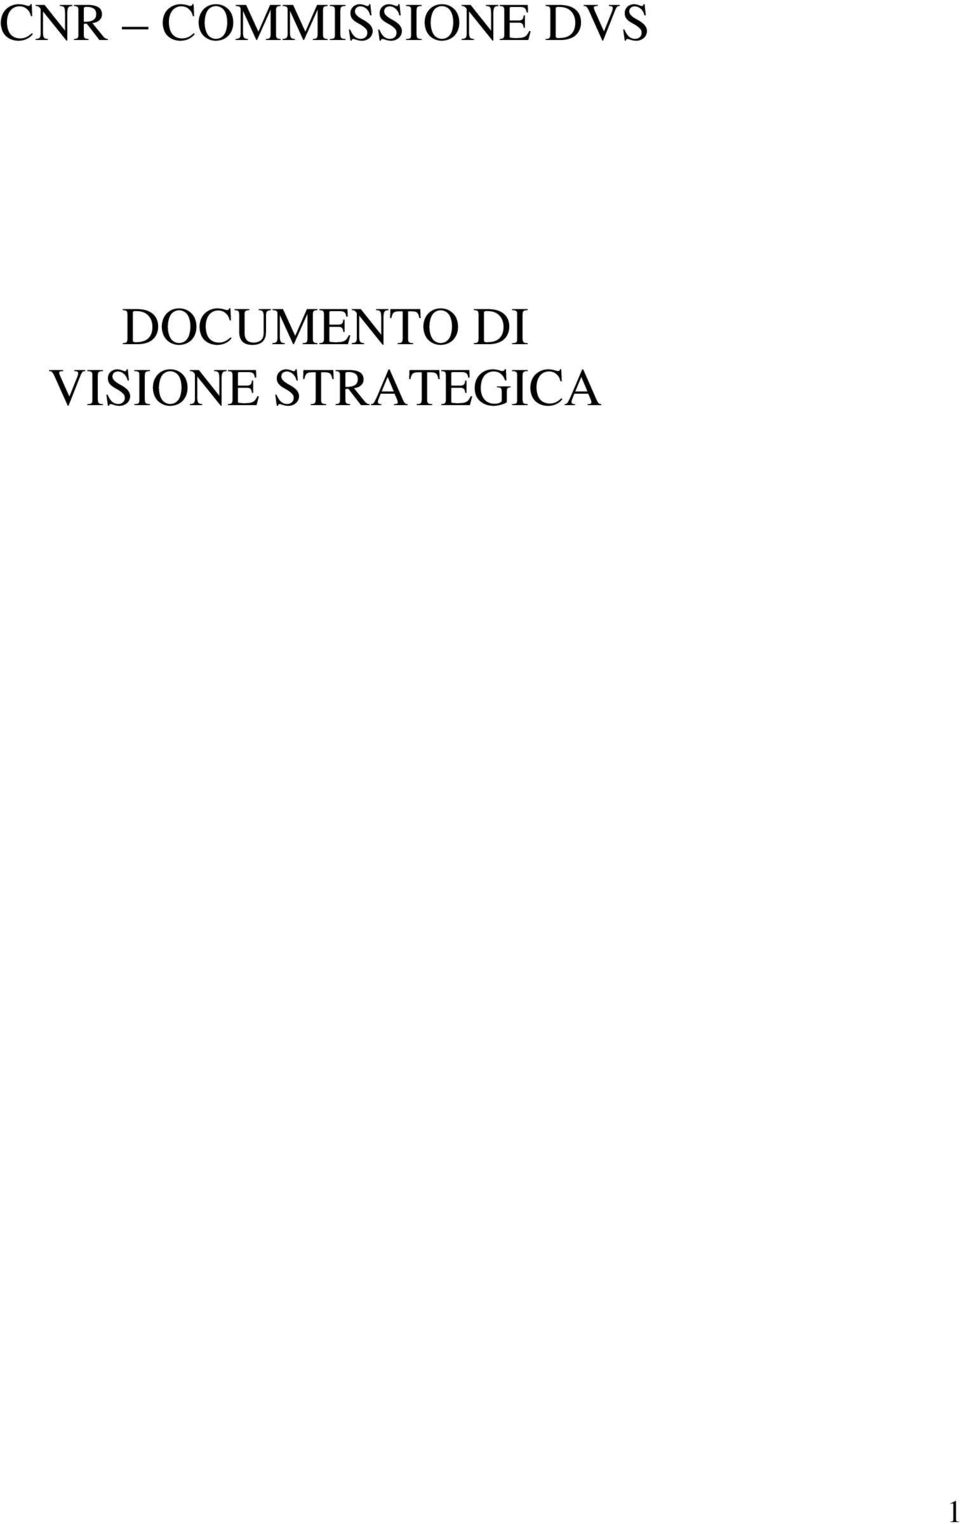 DVS DOCUMENTO